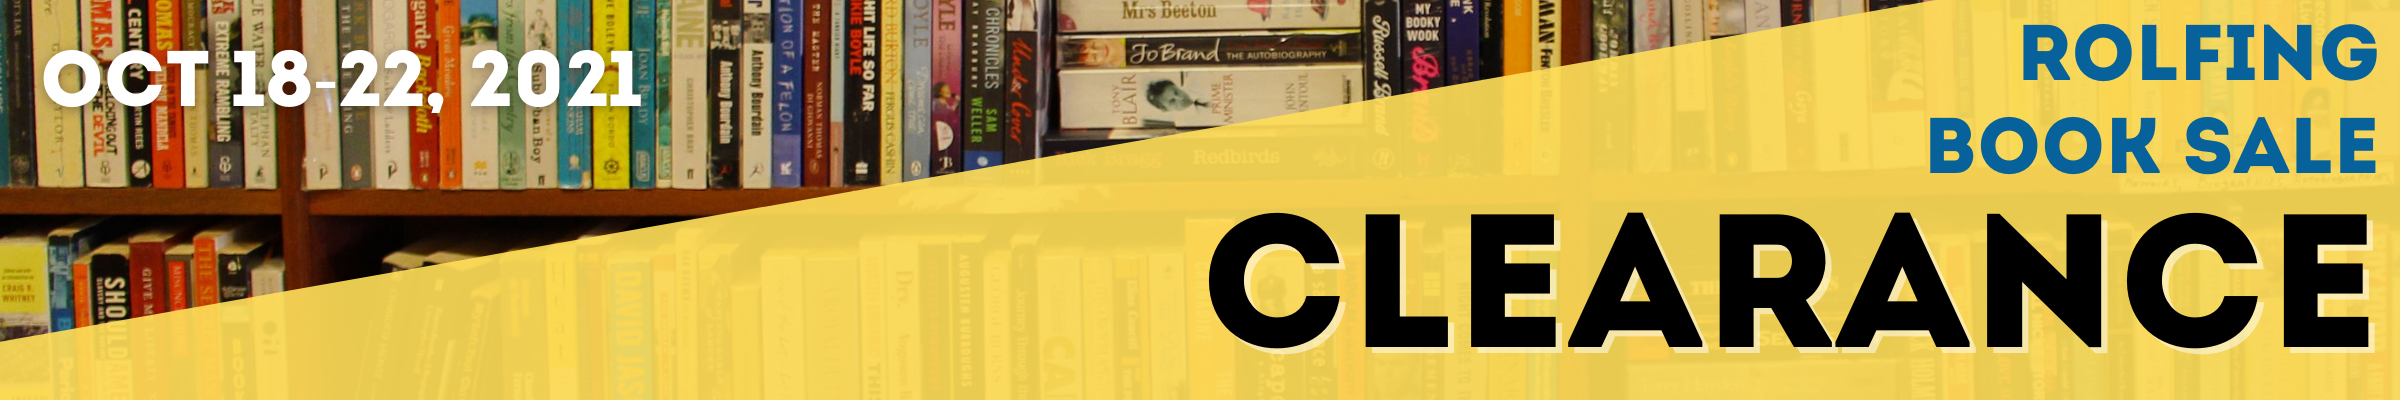 Book Sale Clearance - October 18-22, 2021